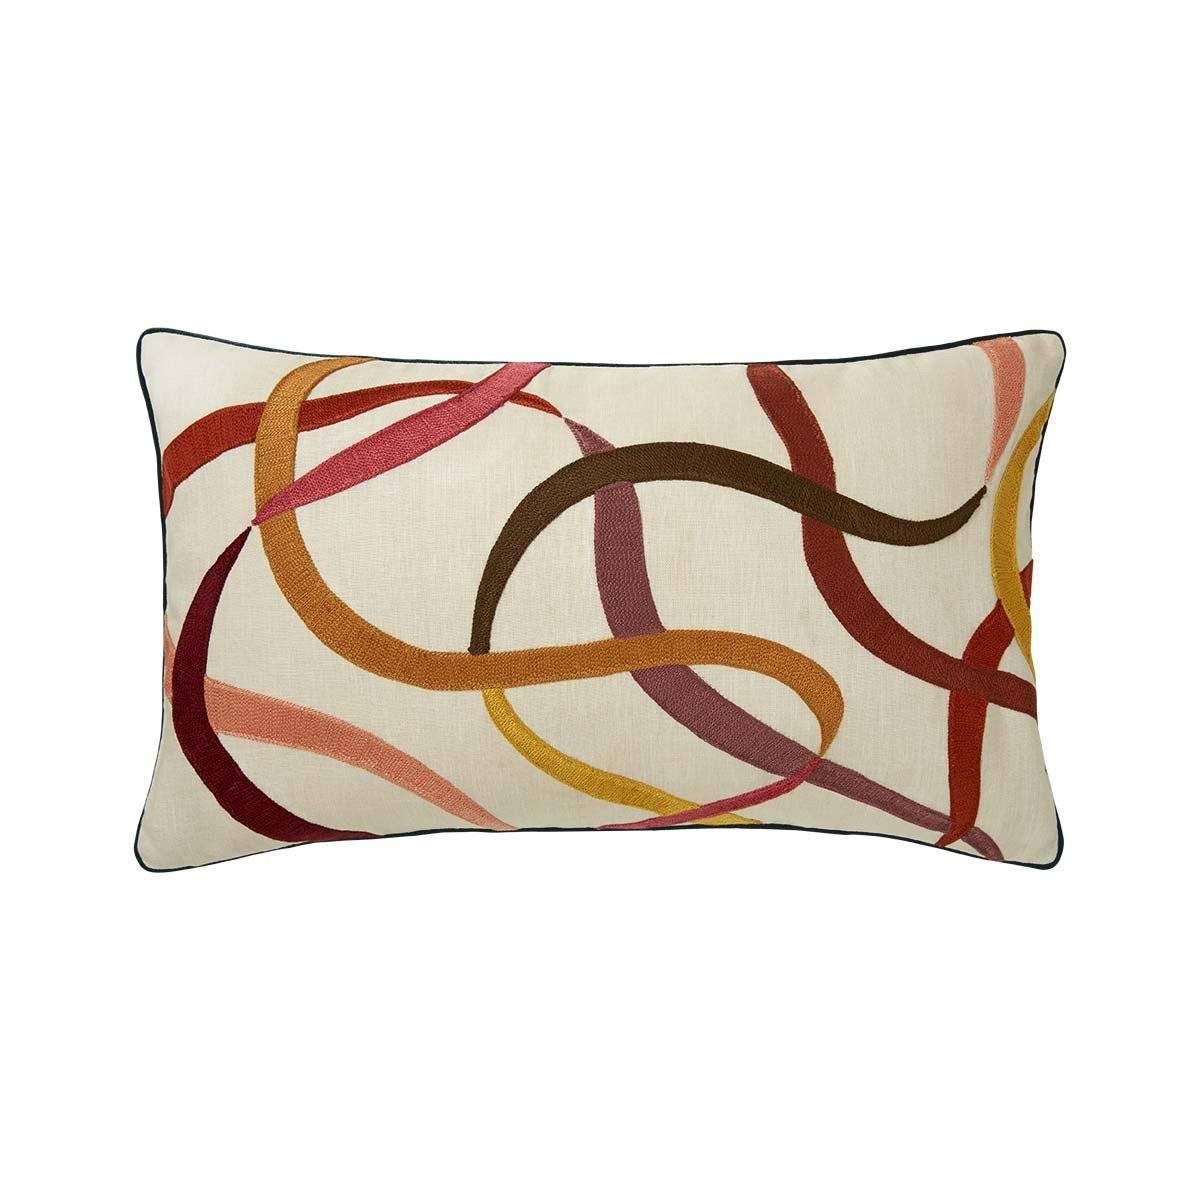 Liesse Amarante Lumbar Pillow by Iosis